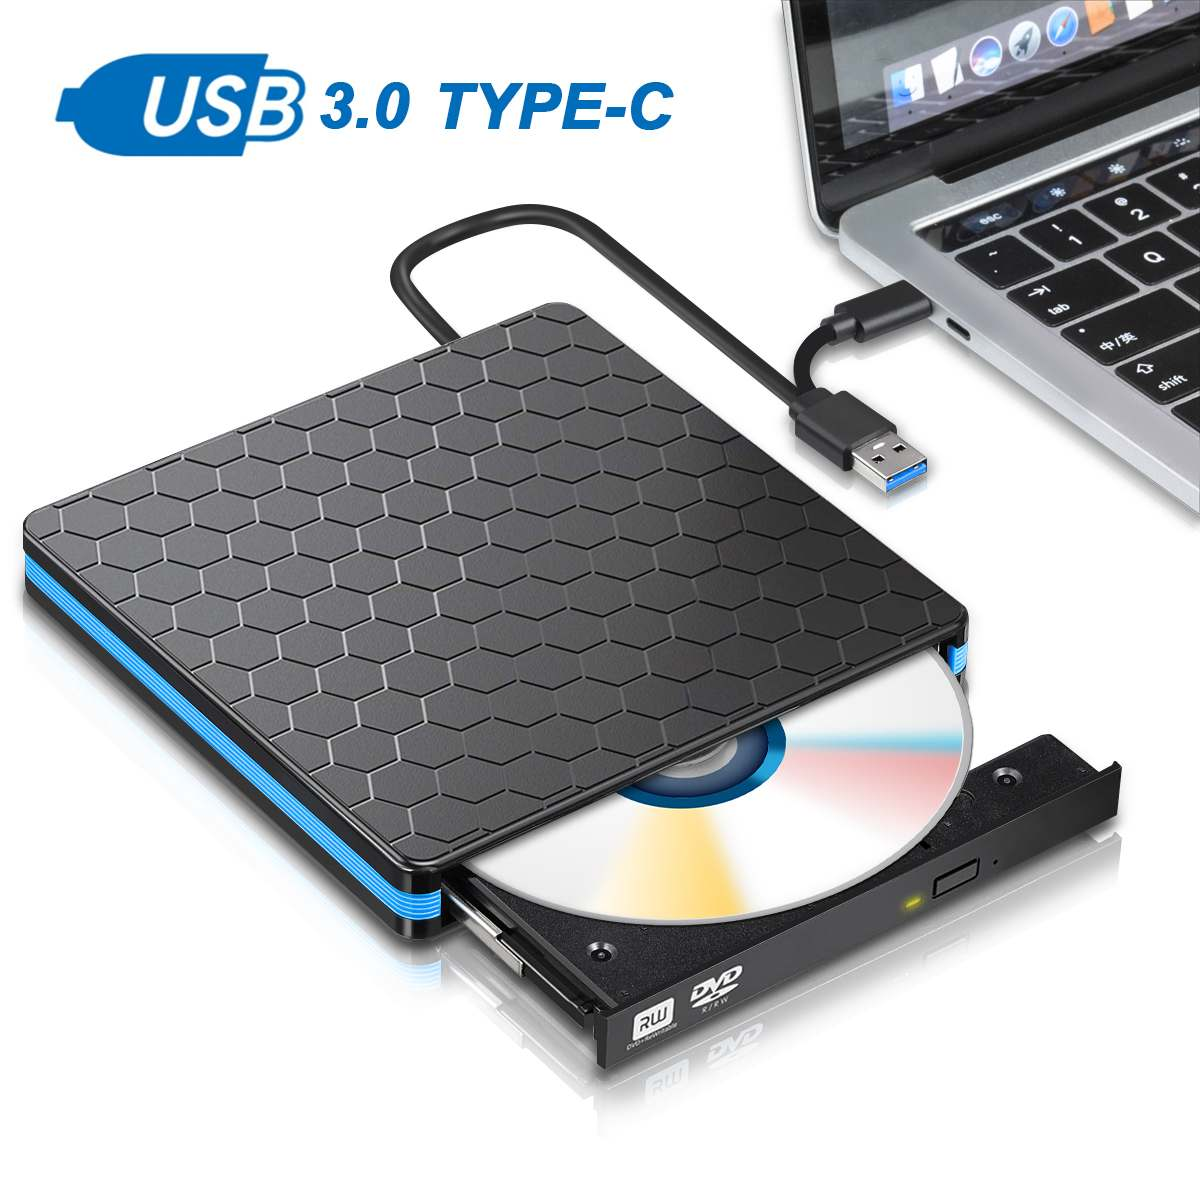 Tipo universal c usb 3.0 externo dvd/cd/vcd burner rw svcd drive player unidade óptica para mac/pc/apple portátil/os/windows